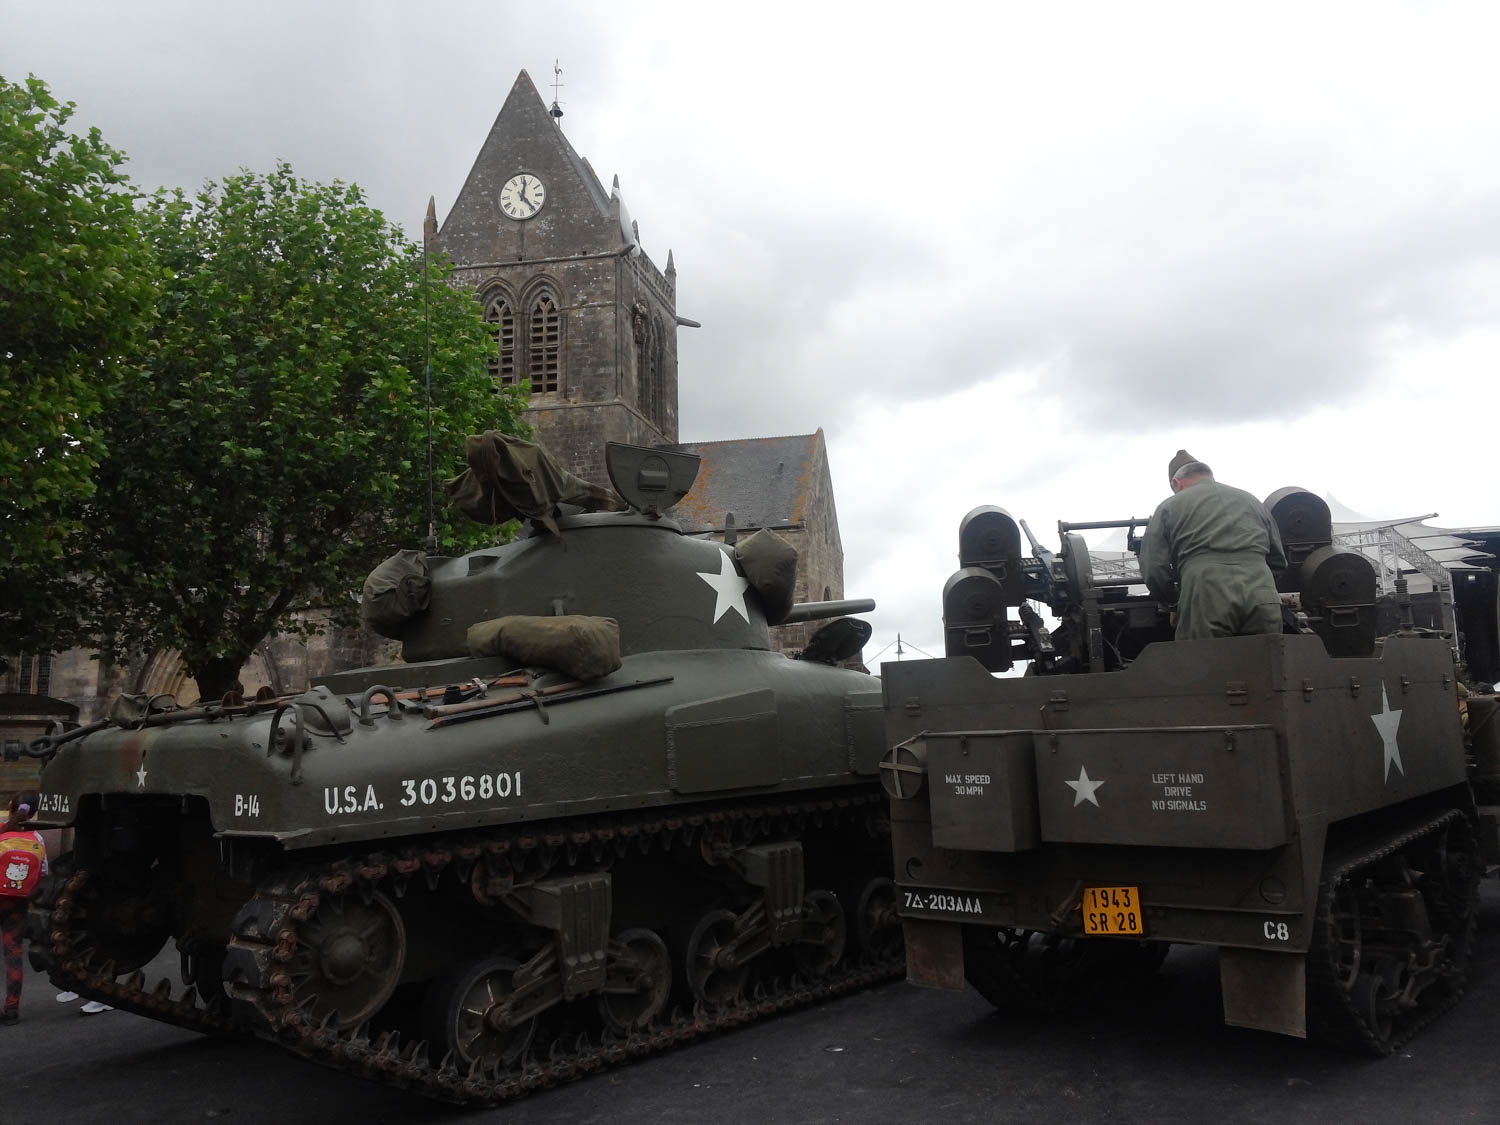 Vintage tanks and half-tracks assemble in the square in front of the church at Ste Mare Eglise in Normandy, where paratroopers from the 101st Airborne landed in the early morning hours of D-Day.